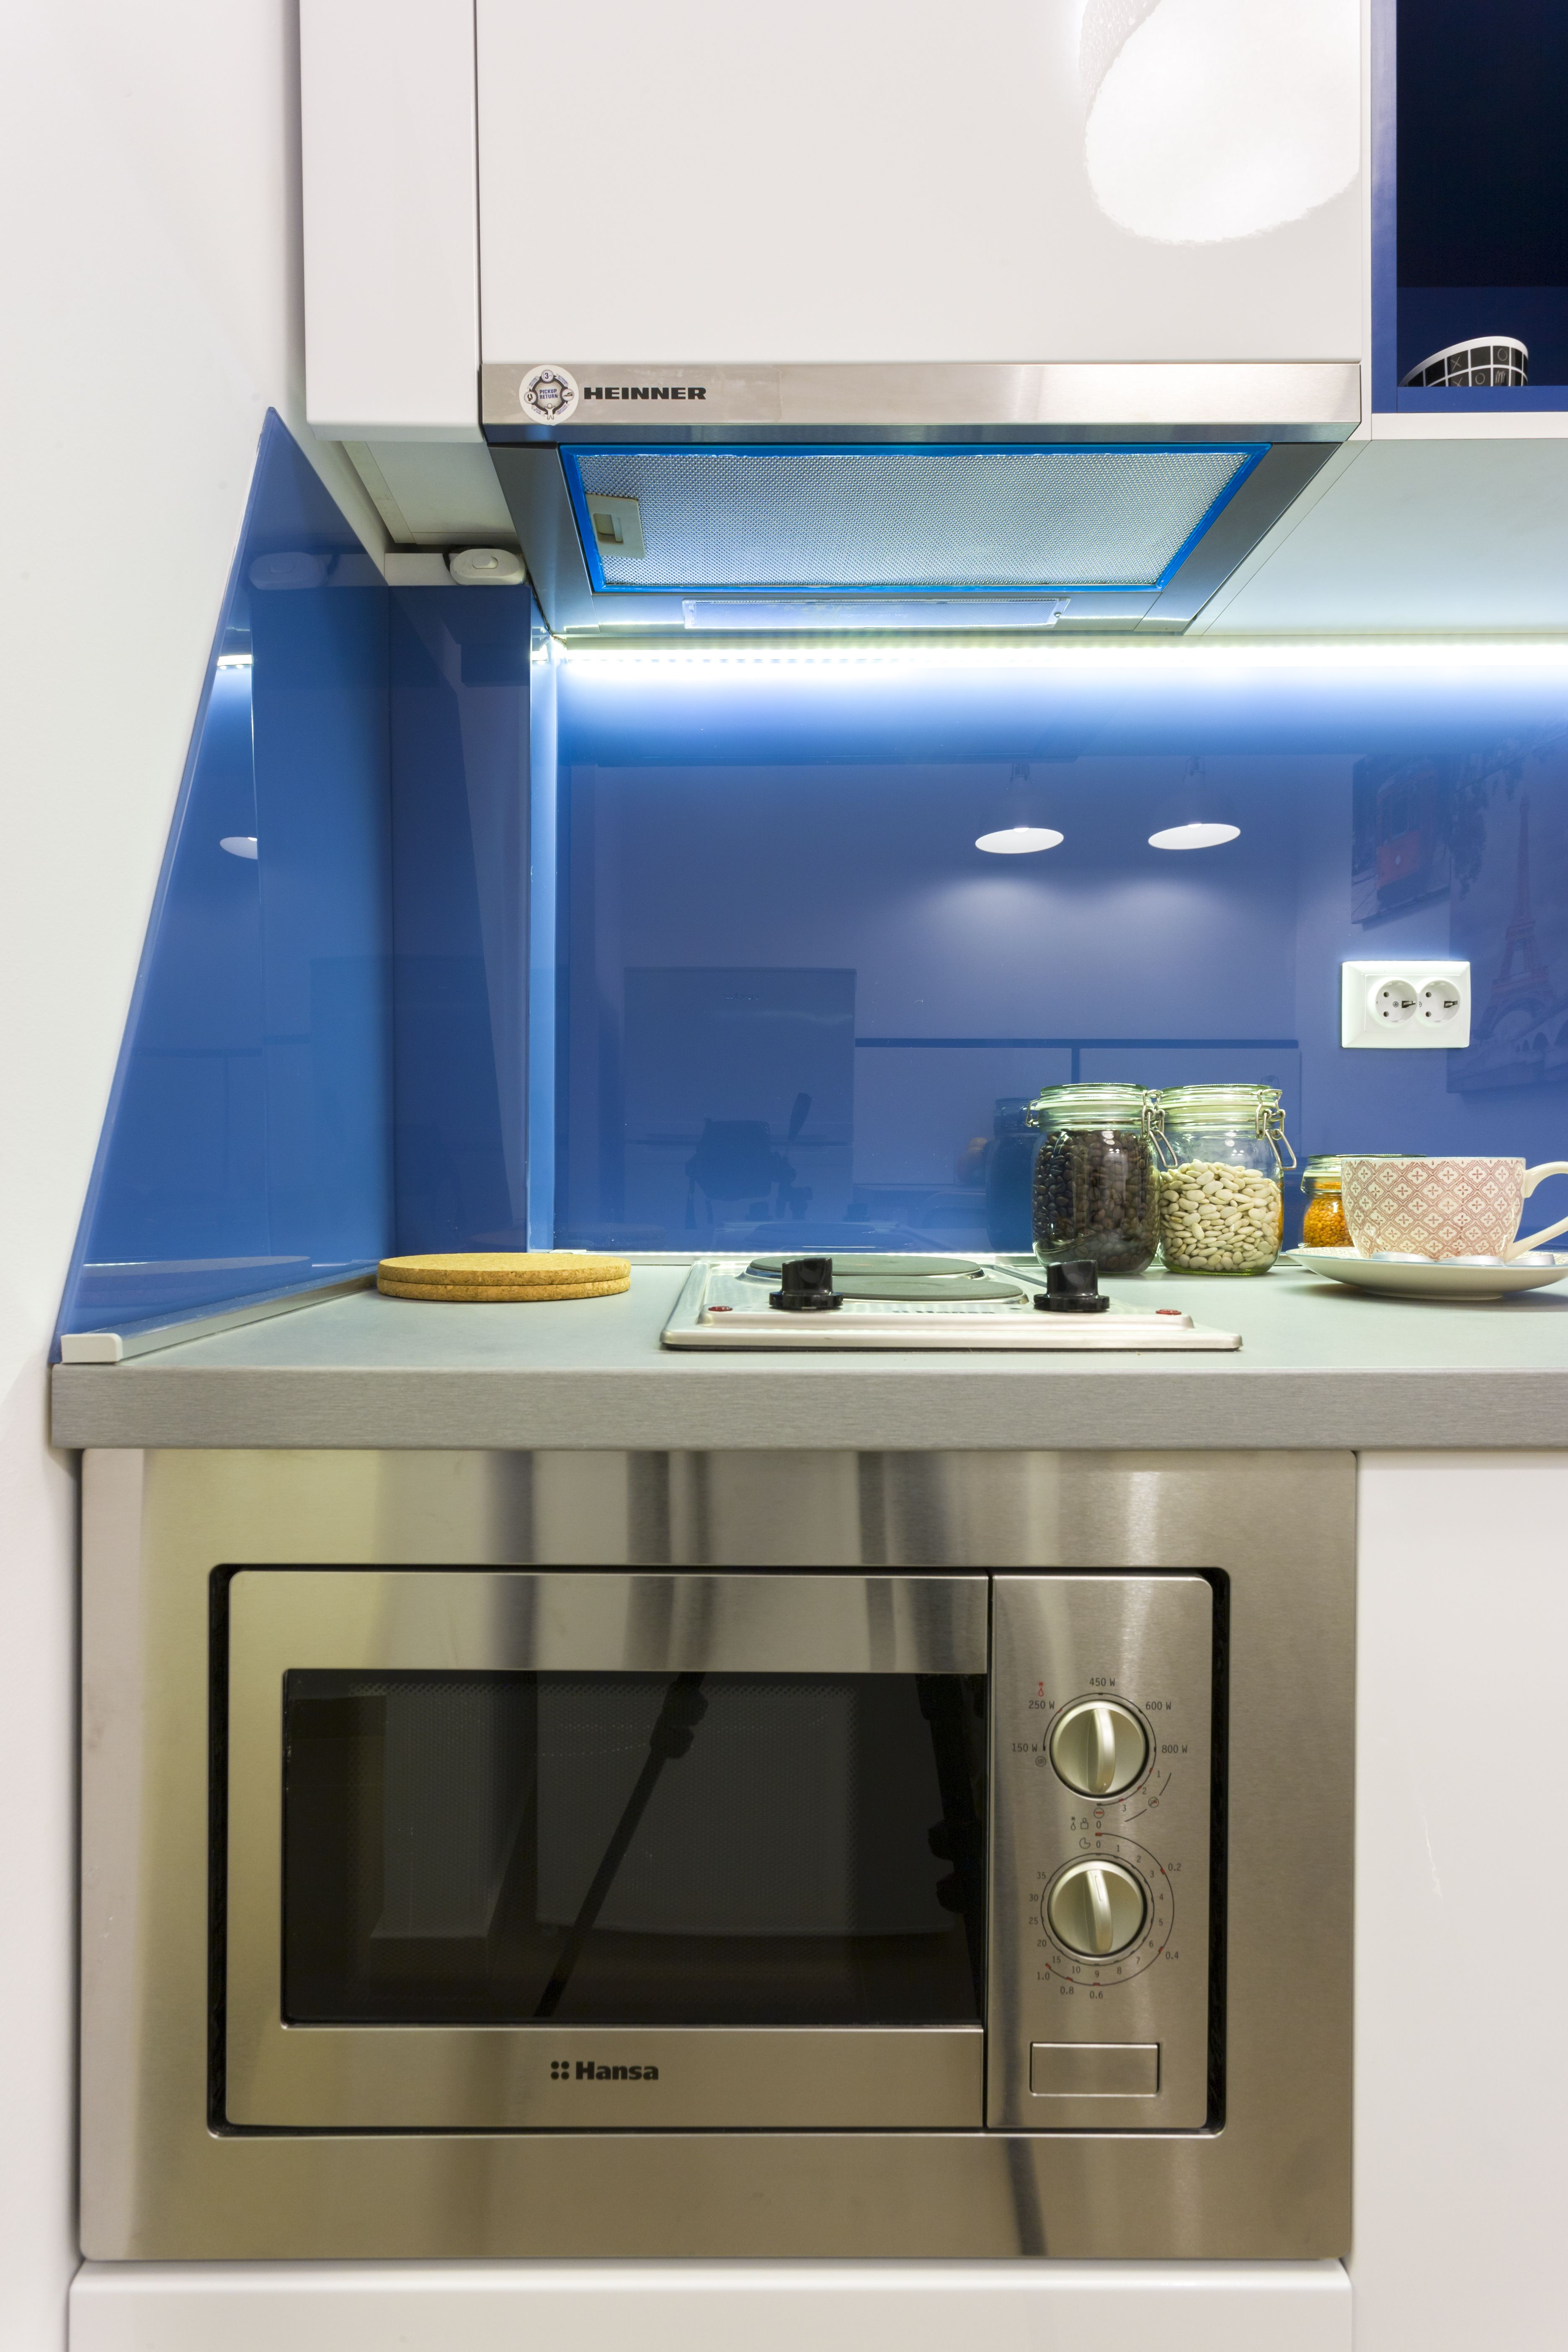 Small kitchen design with blue glass back wall and white furniture